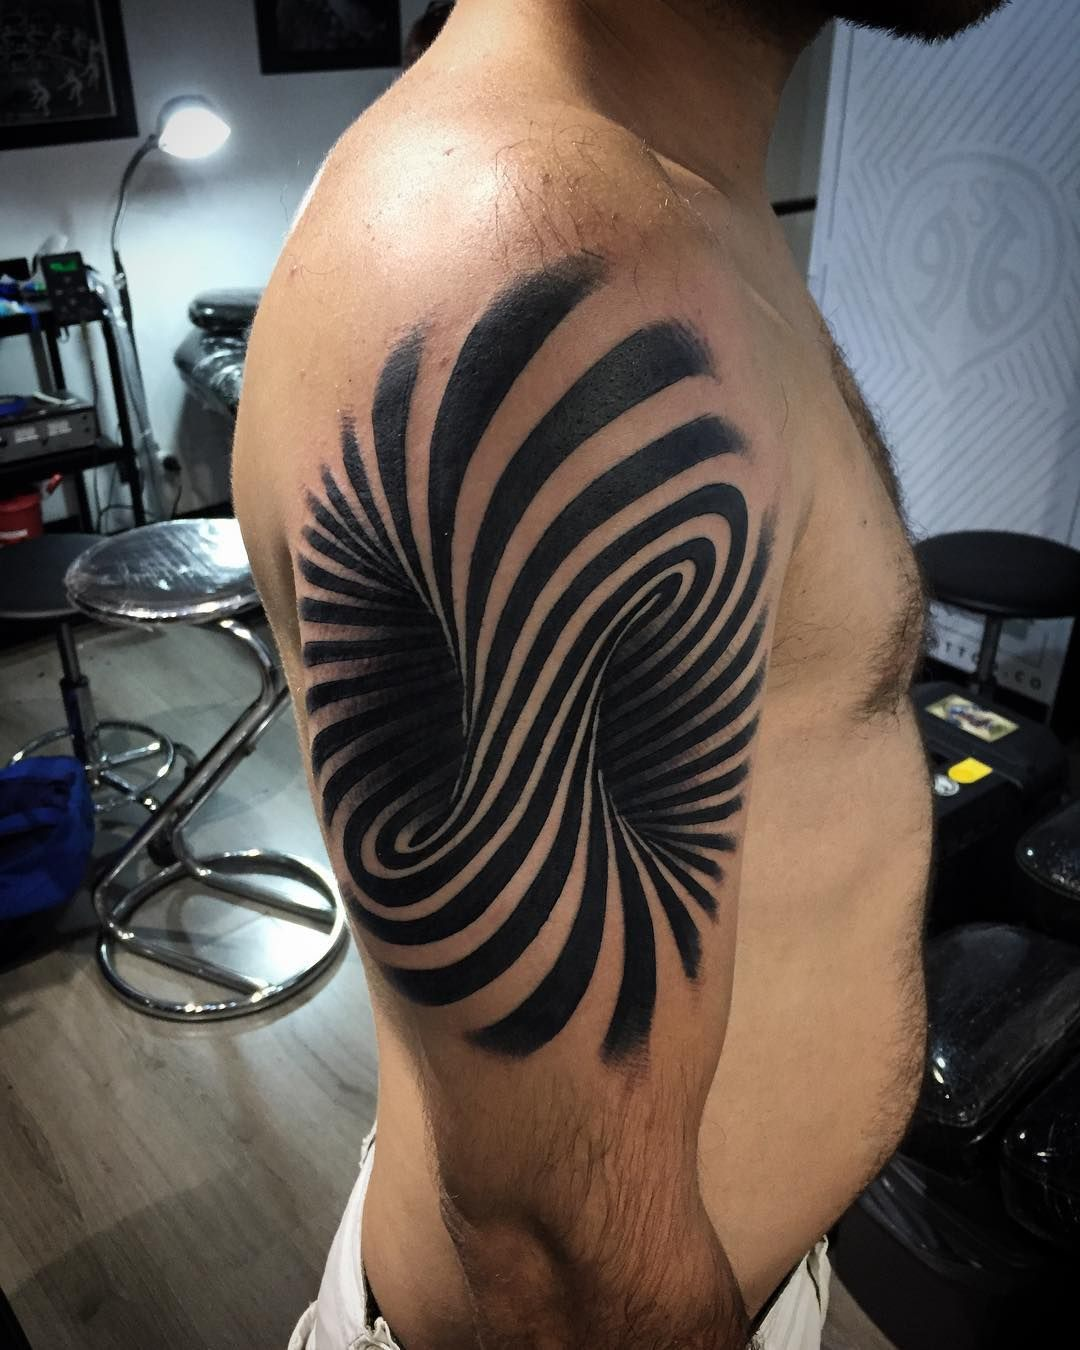 Optical Illusion Never Gets Old Optical Illusion Tattoo Tattoos For Guys Tattoo Designs Men